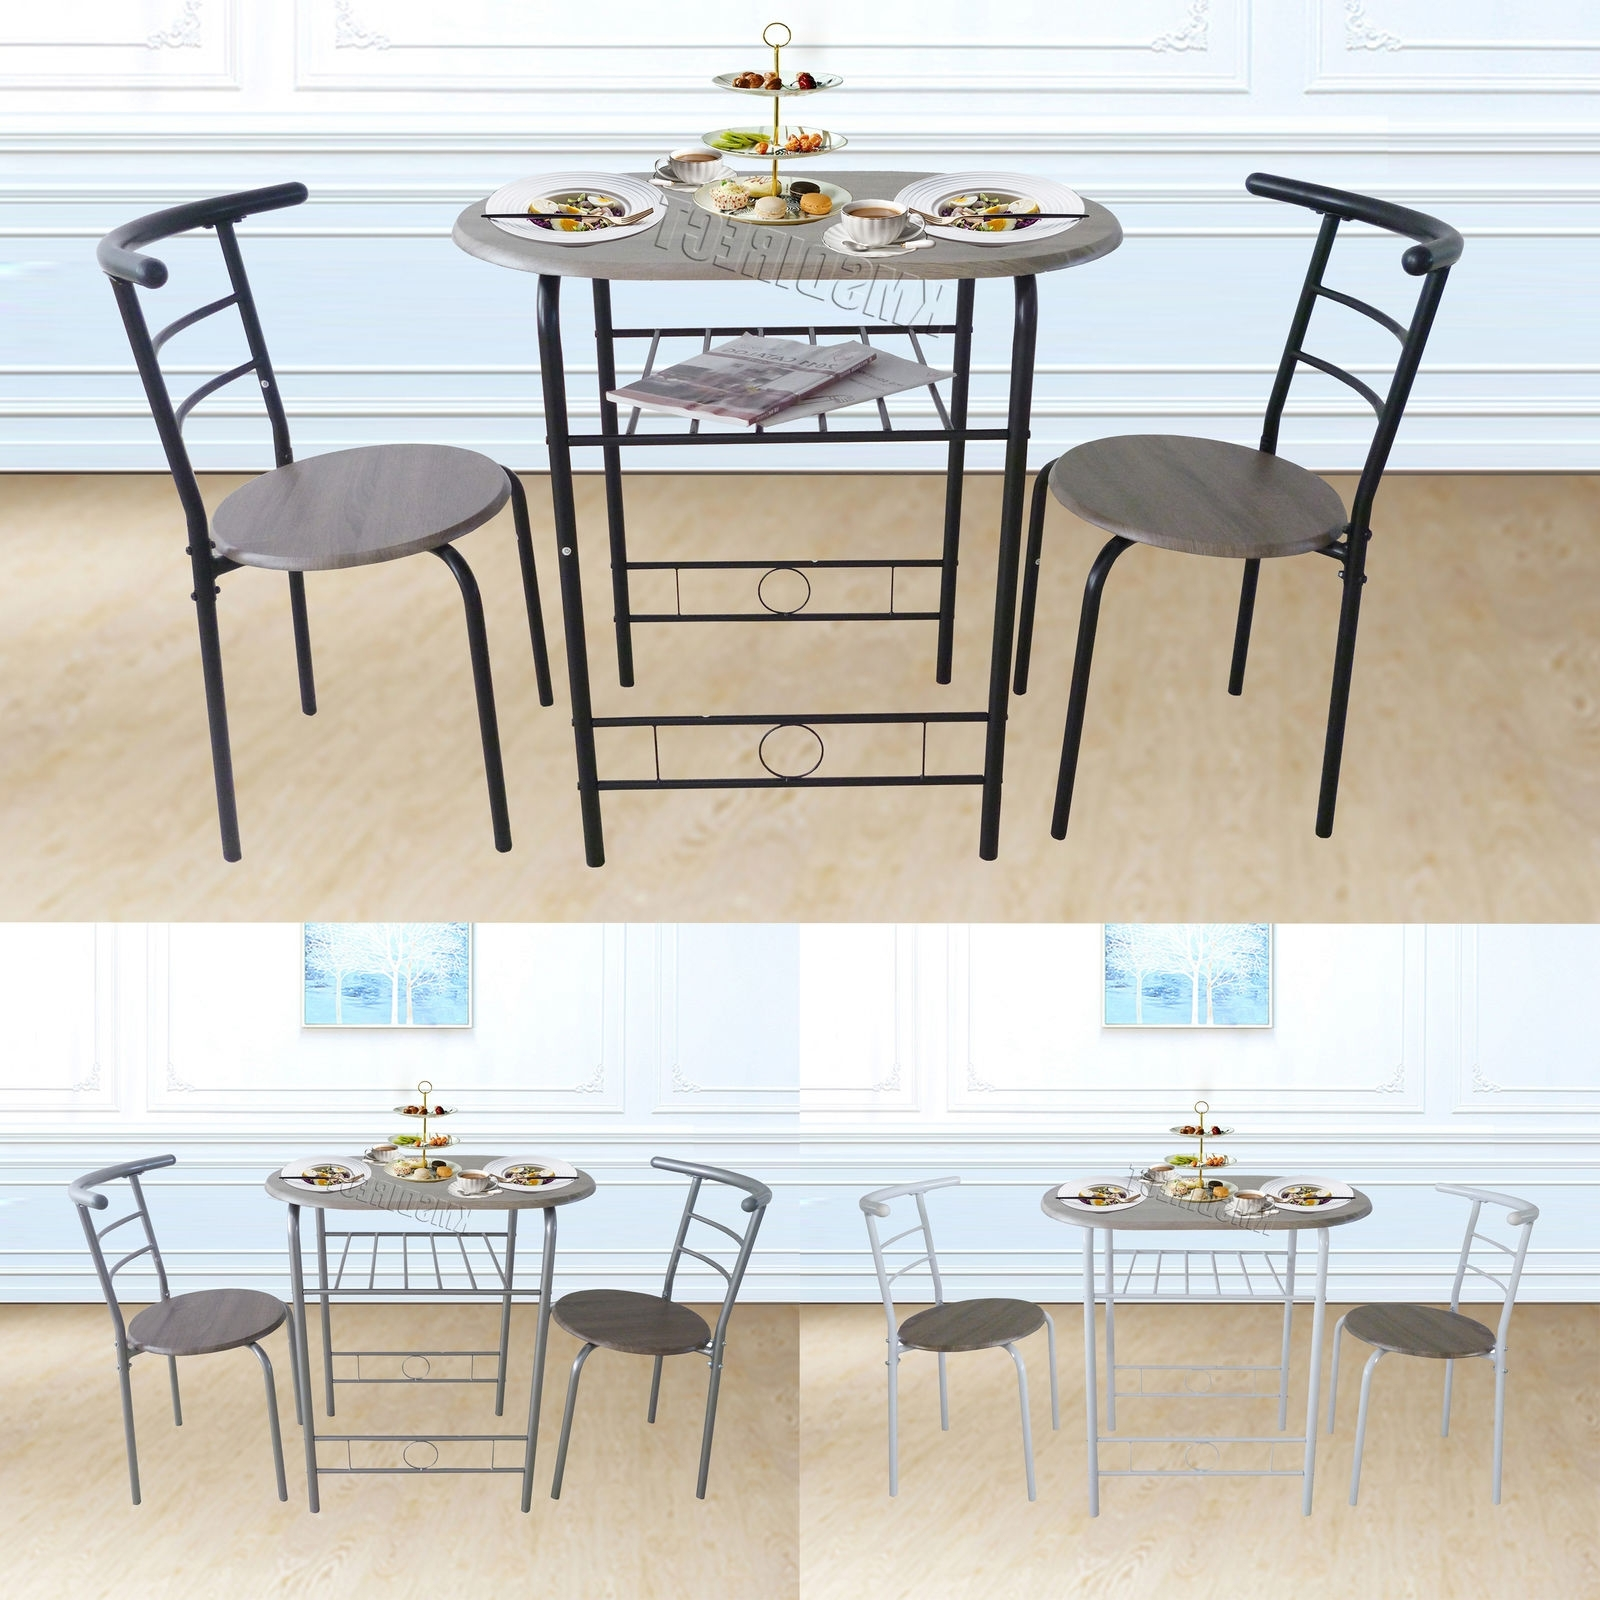 Favorite Westwood Compact Dining Table Breakfast Bar 2 Chair Set Metal Mdf For Compact Dining Sets (View 24 of 25)